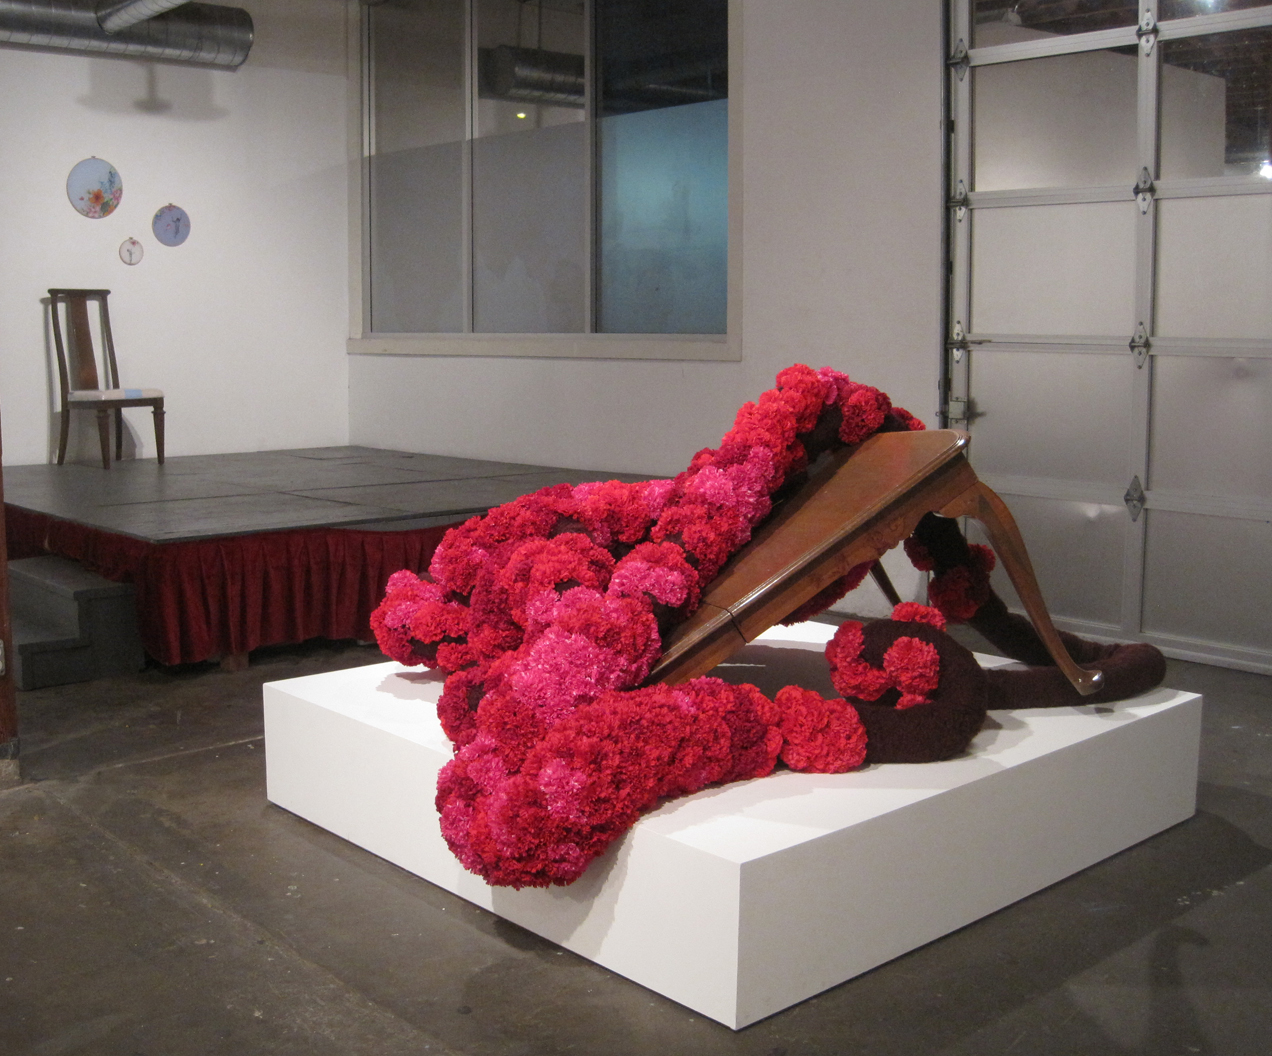 The Dreaming,  yarn, silk carnations, wooden table. dimensions variable, 2012.